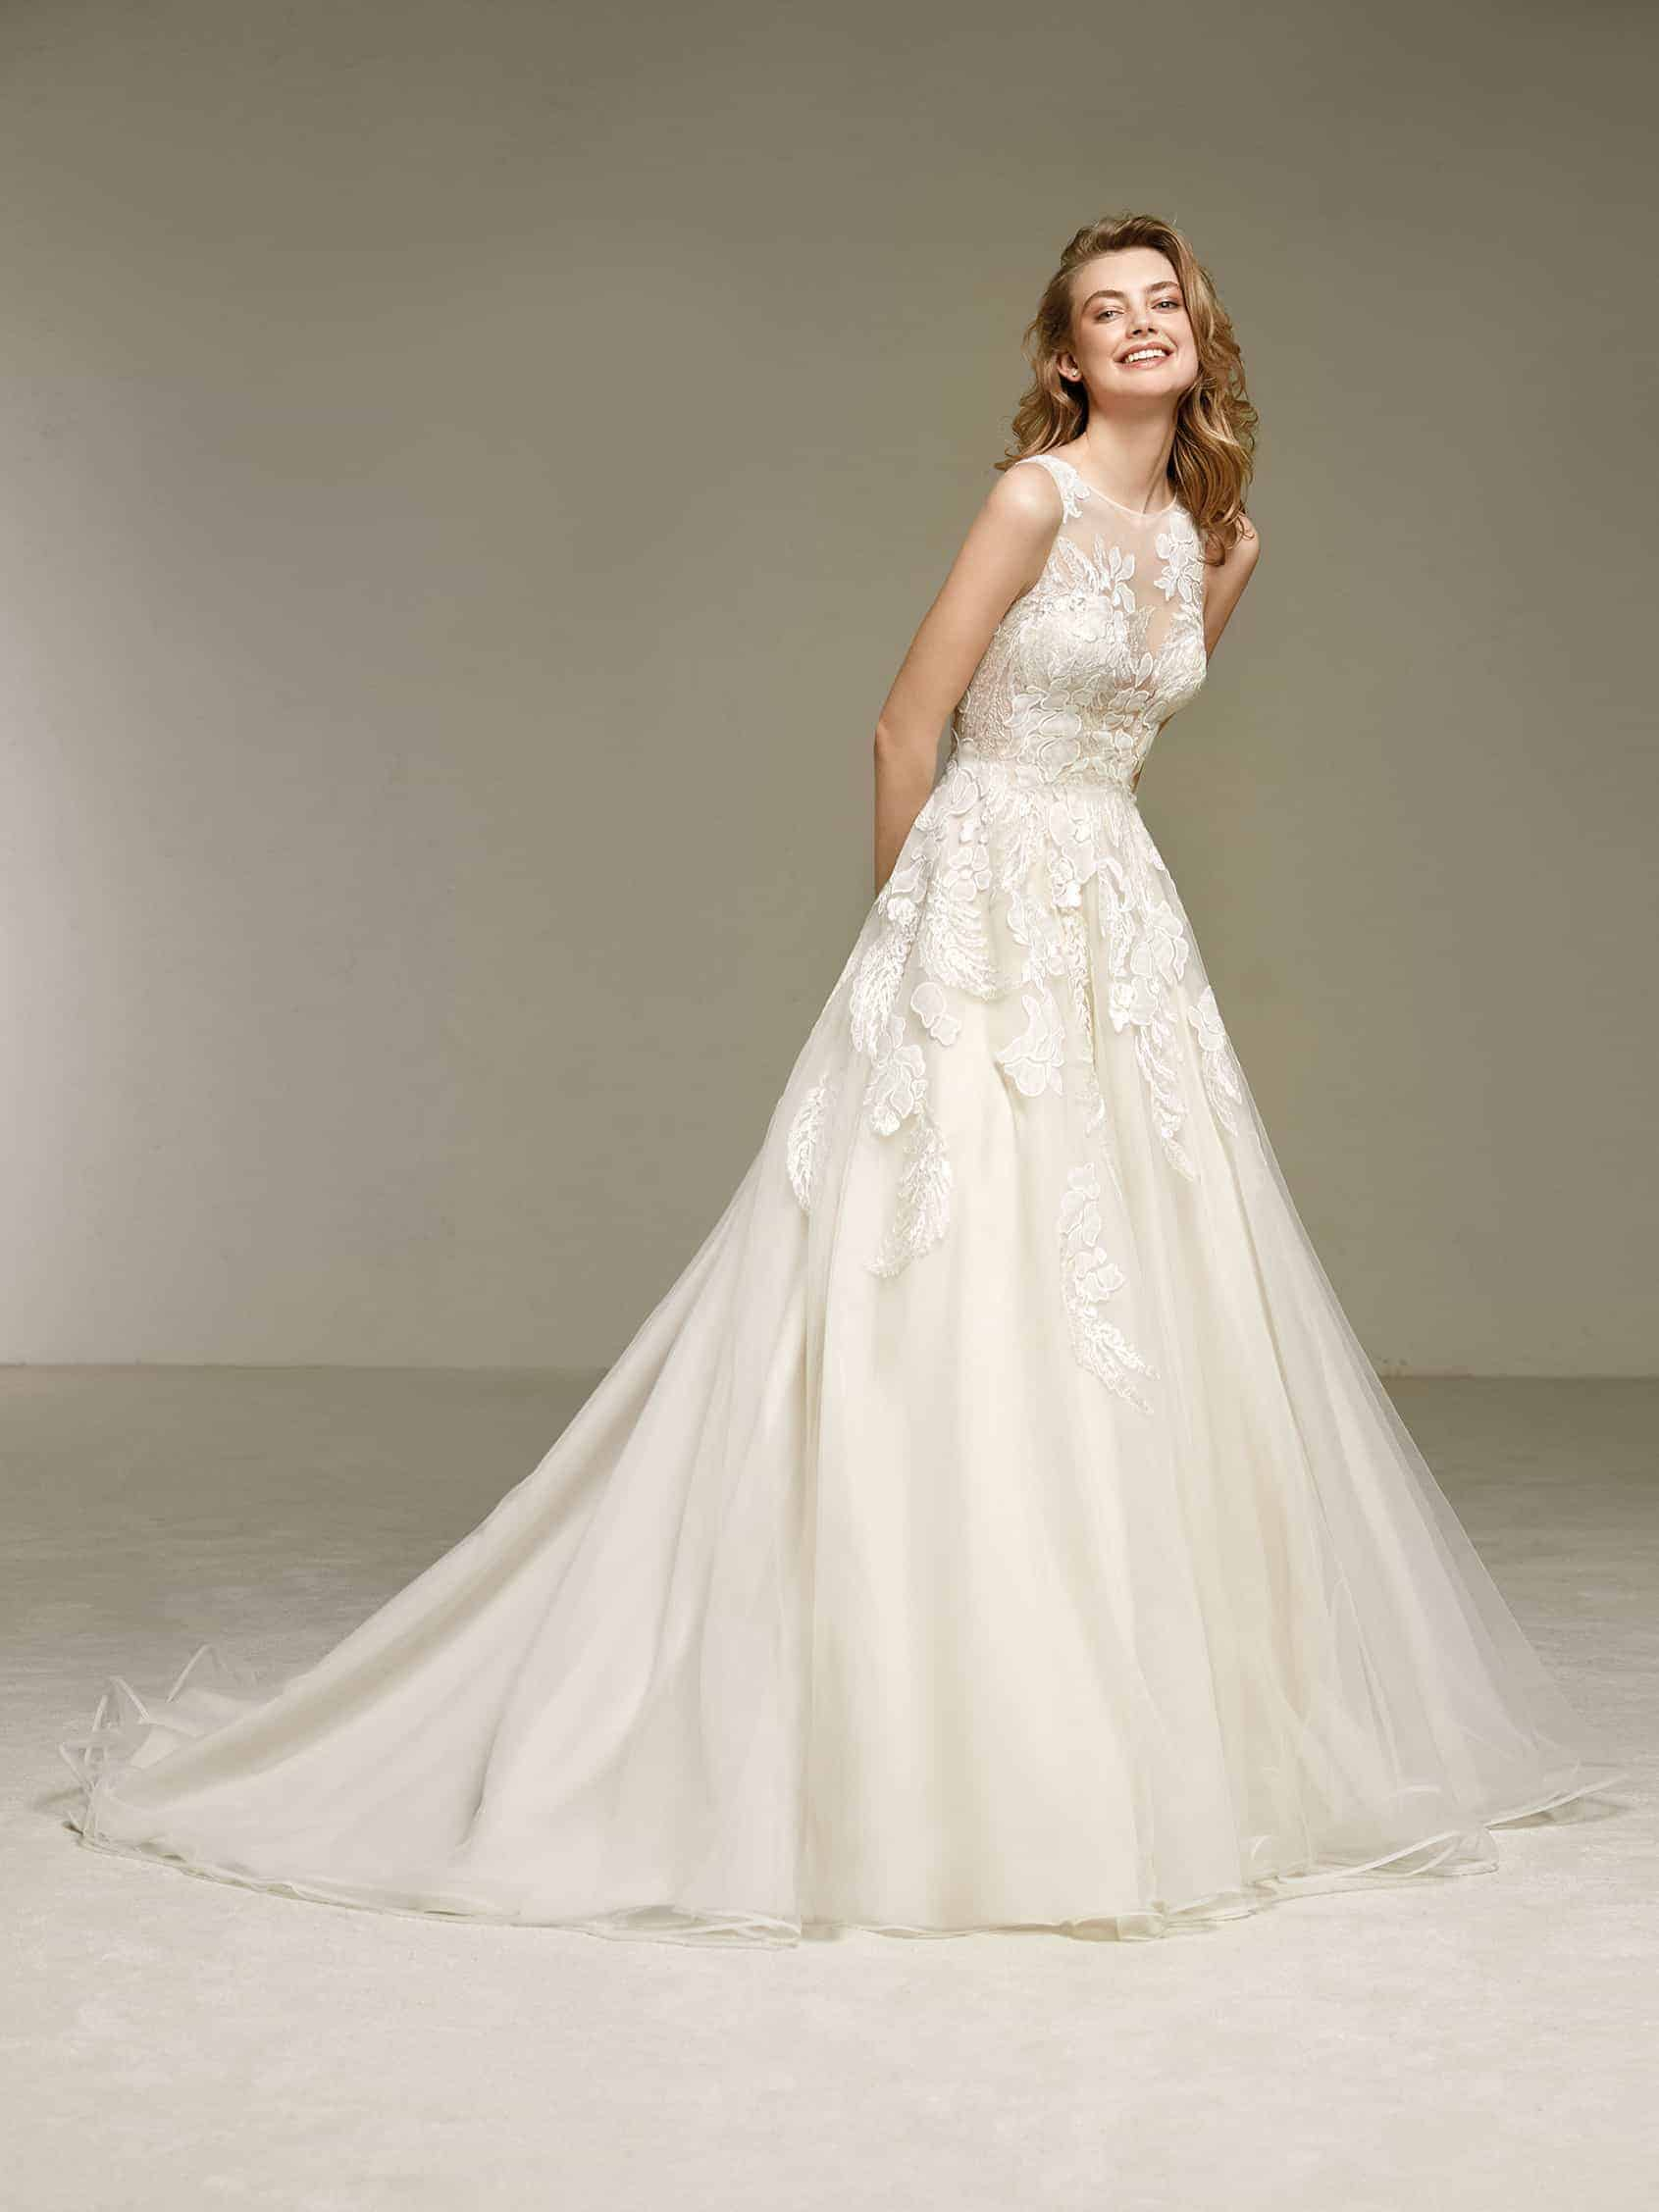 Trouwjurk Dola van Pronovias bij Honeymoonshop 1